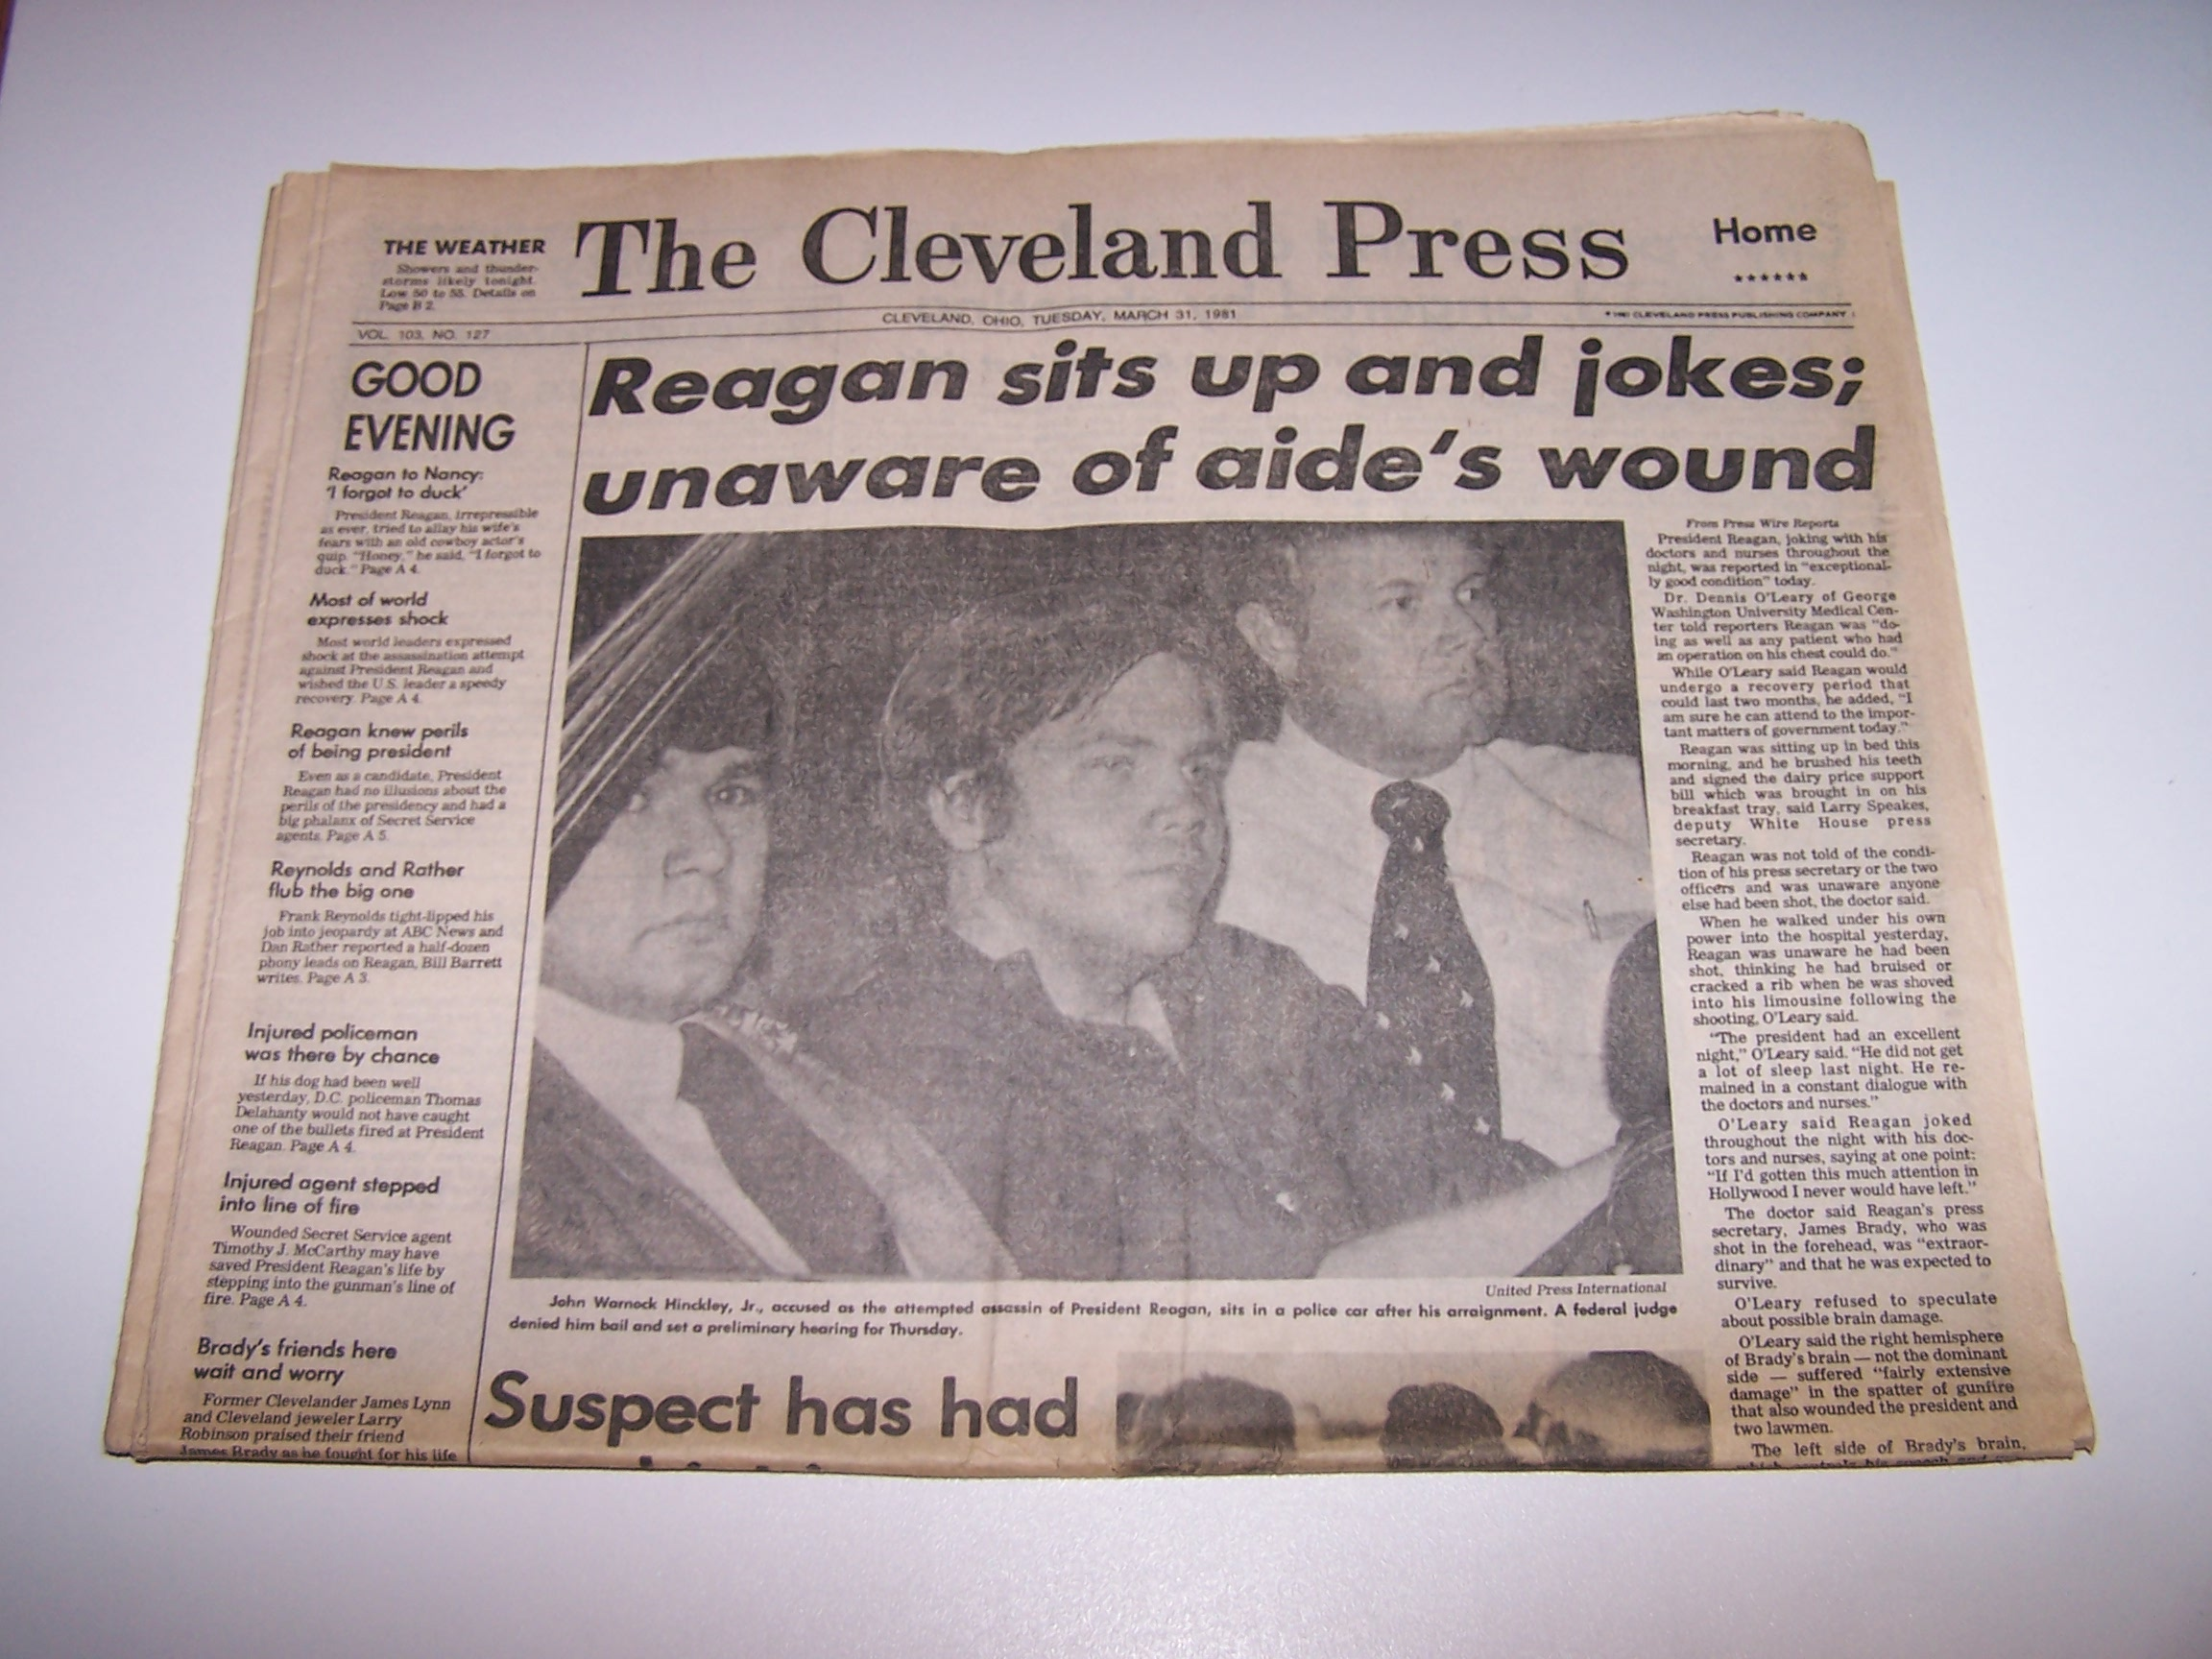 Nixon Resigns, Ford Takes Oath, 1974 Cleveland Plain Dealer